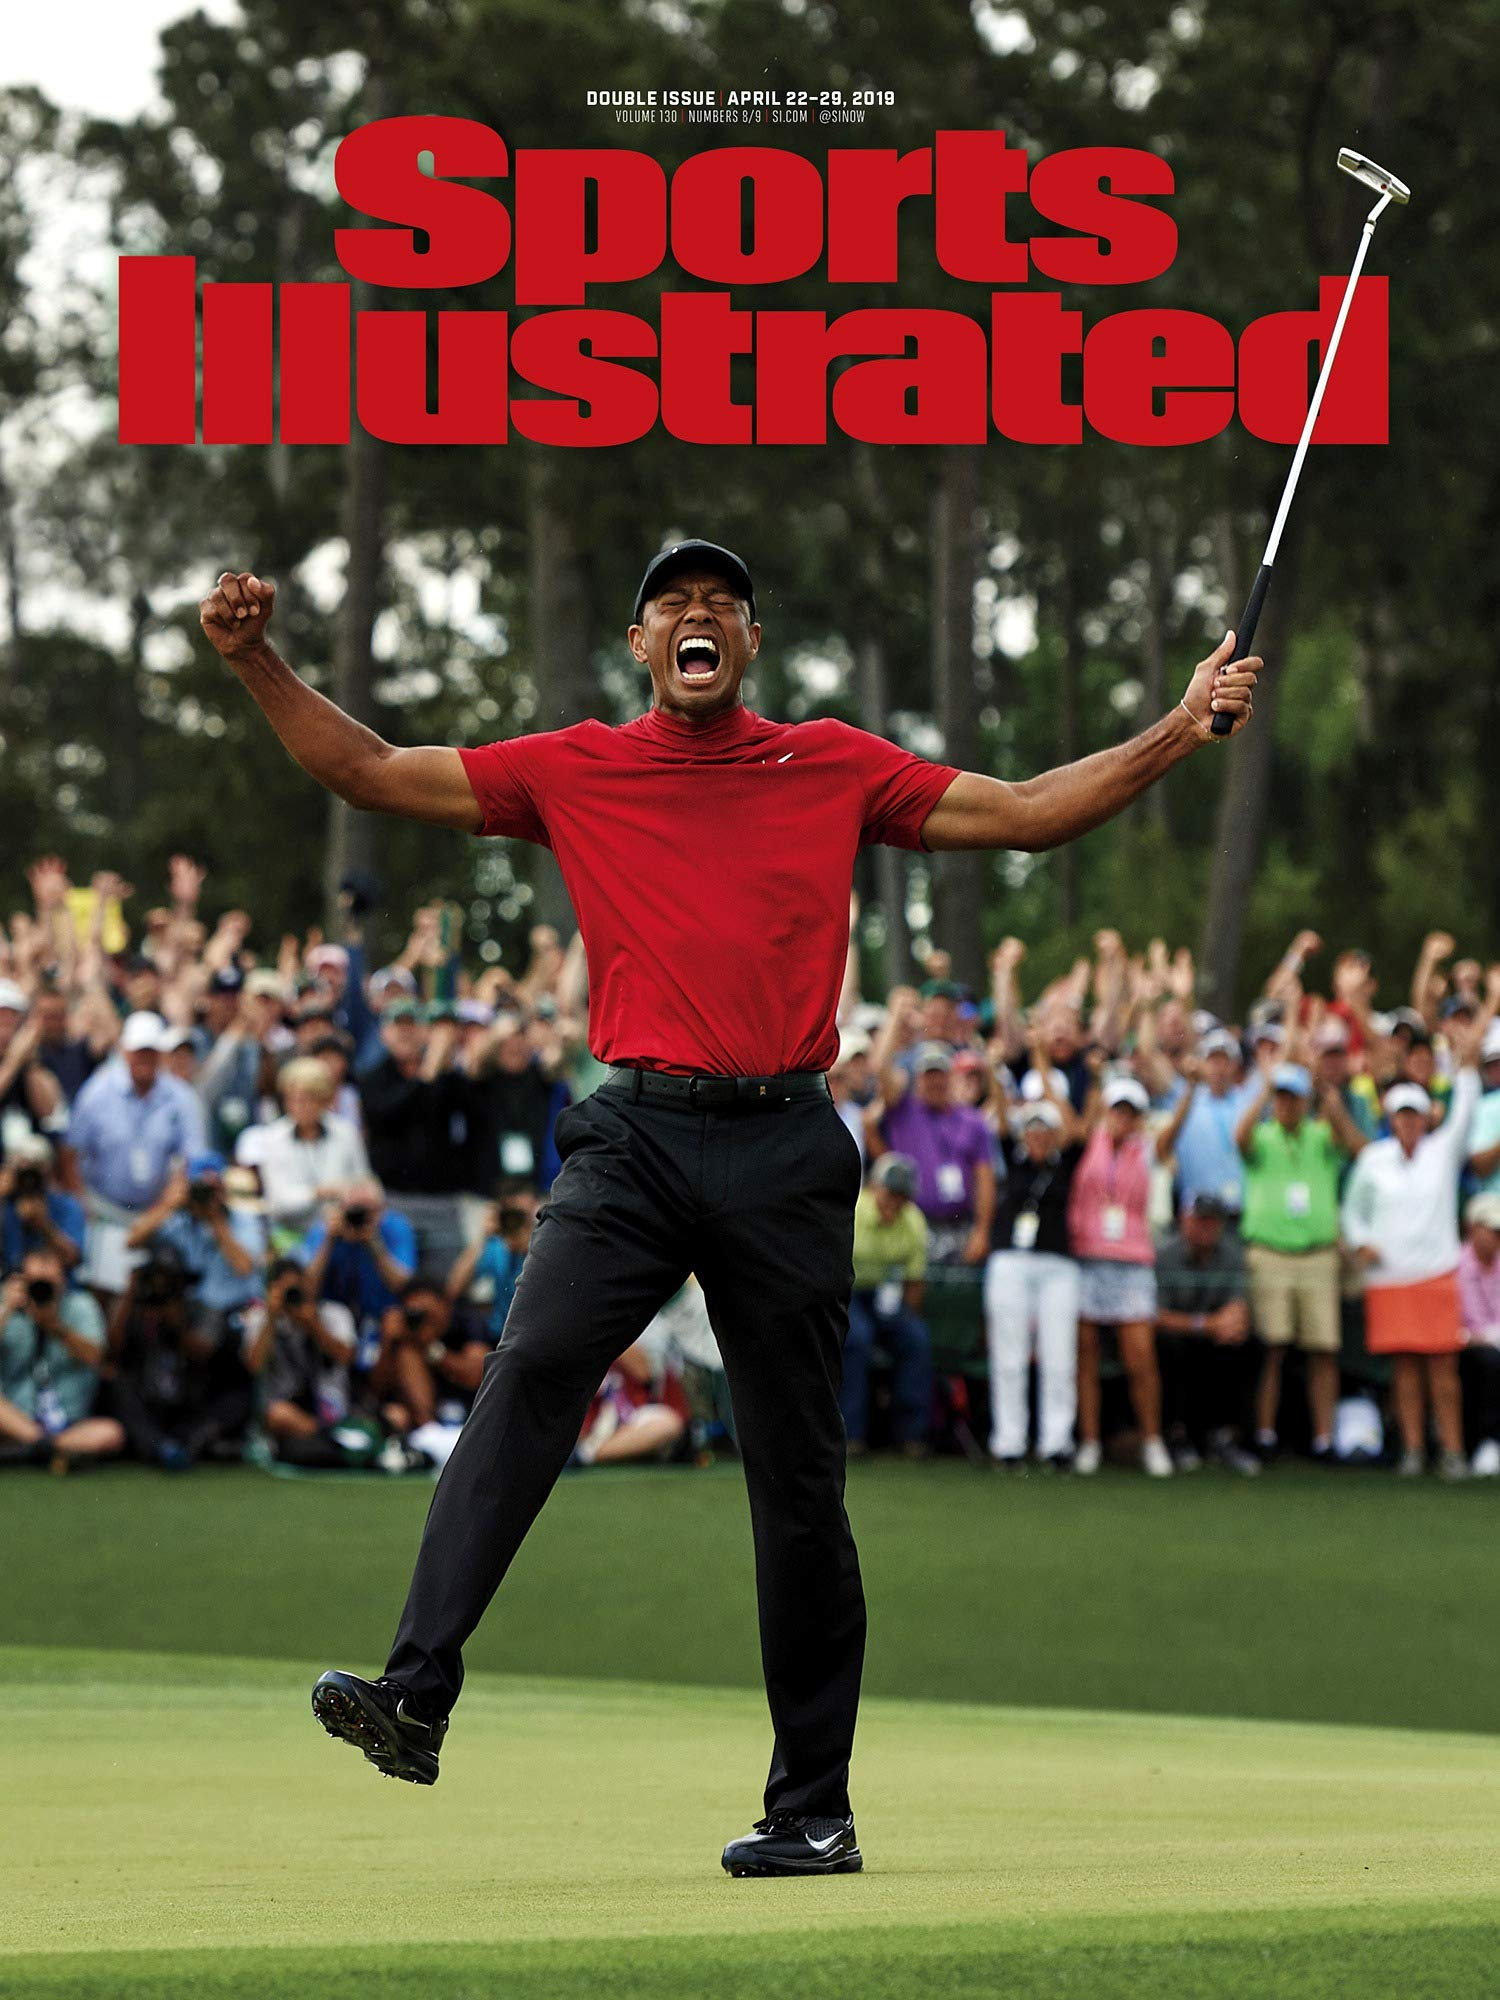 PosterWarehouse2017 Tiger Woods WINS 2019 Masters Sports Illustrated Cover Commemorative Poster by PosterWarehouse2017